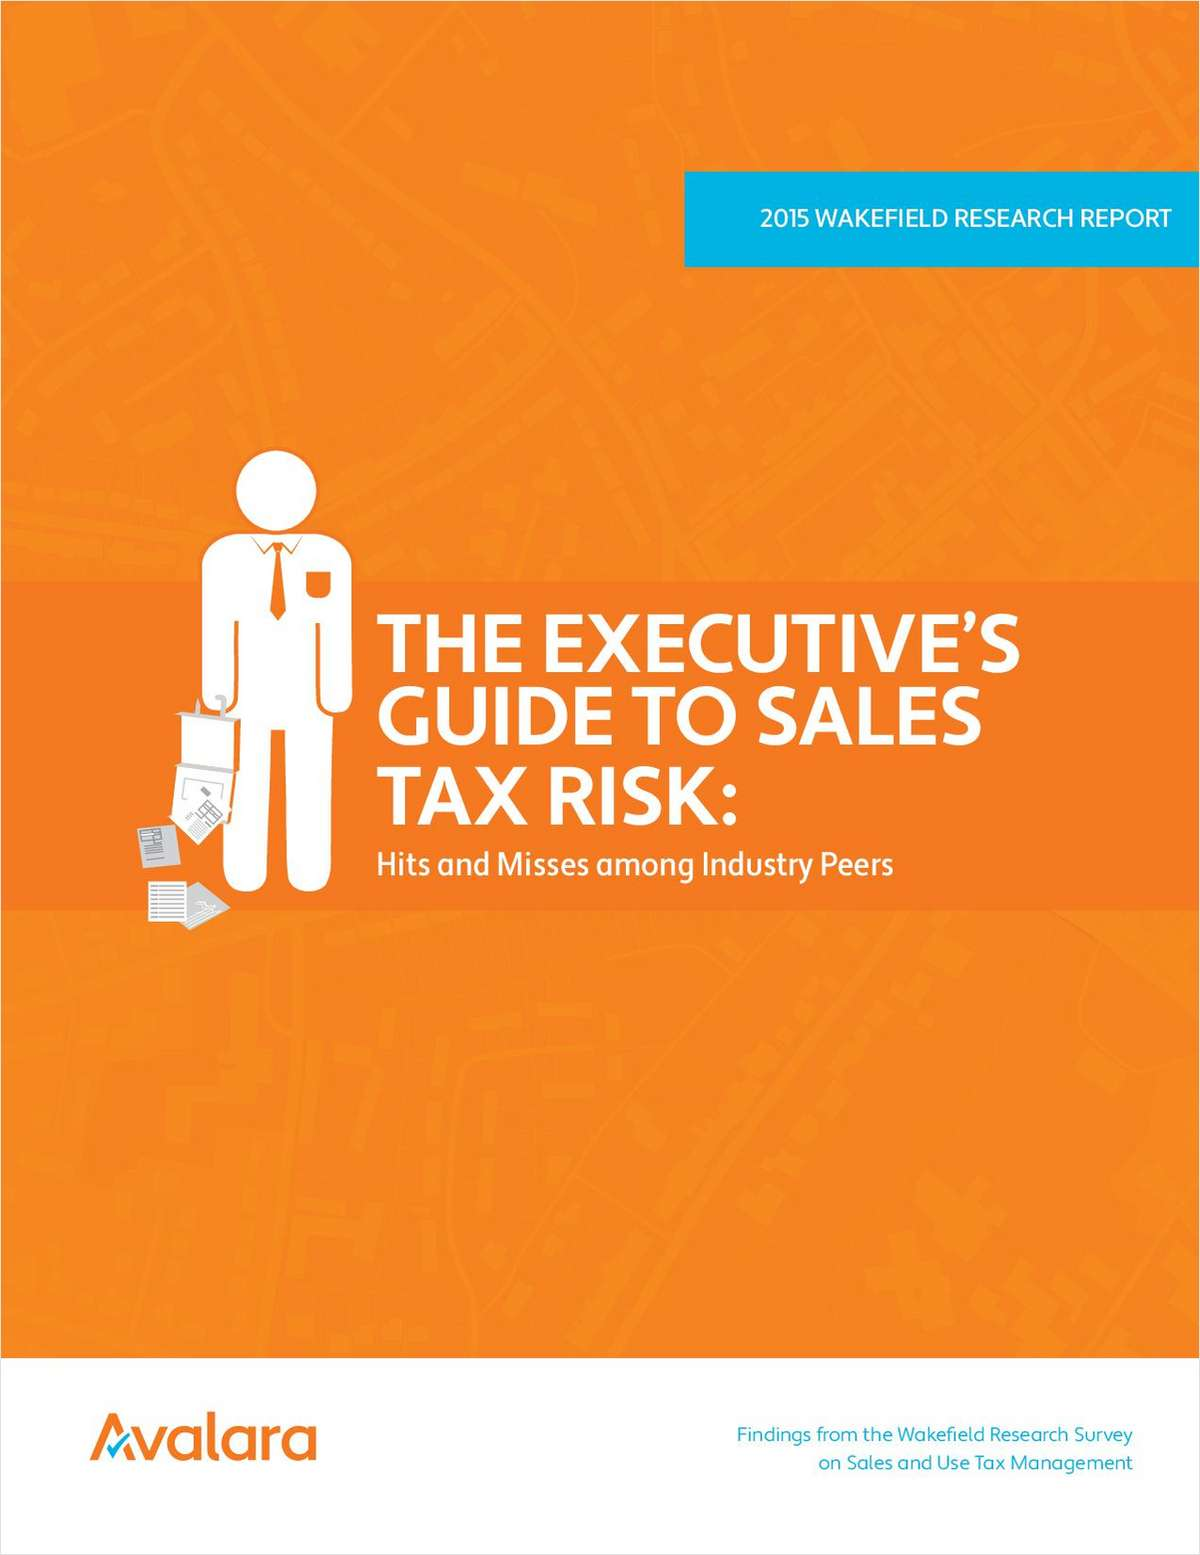 The Executive's Guide to Sales Tax Risk: Hits and Misses Among Industry Peers